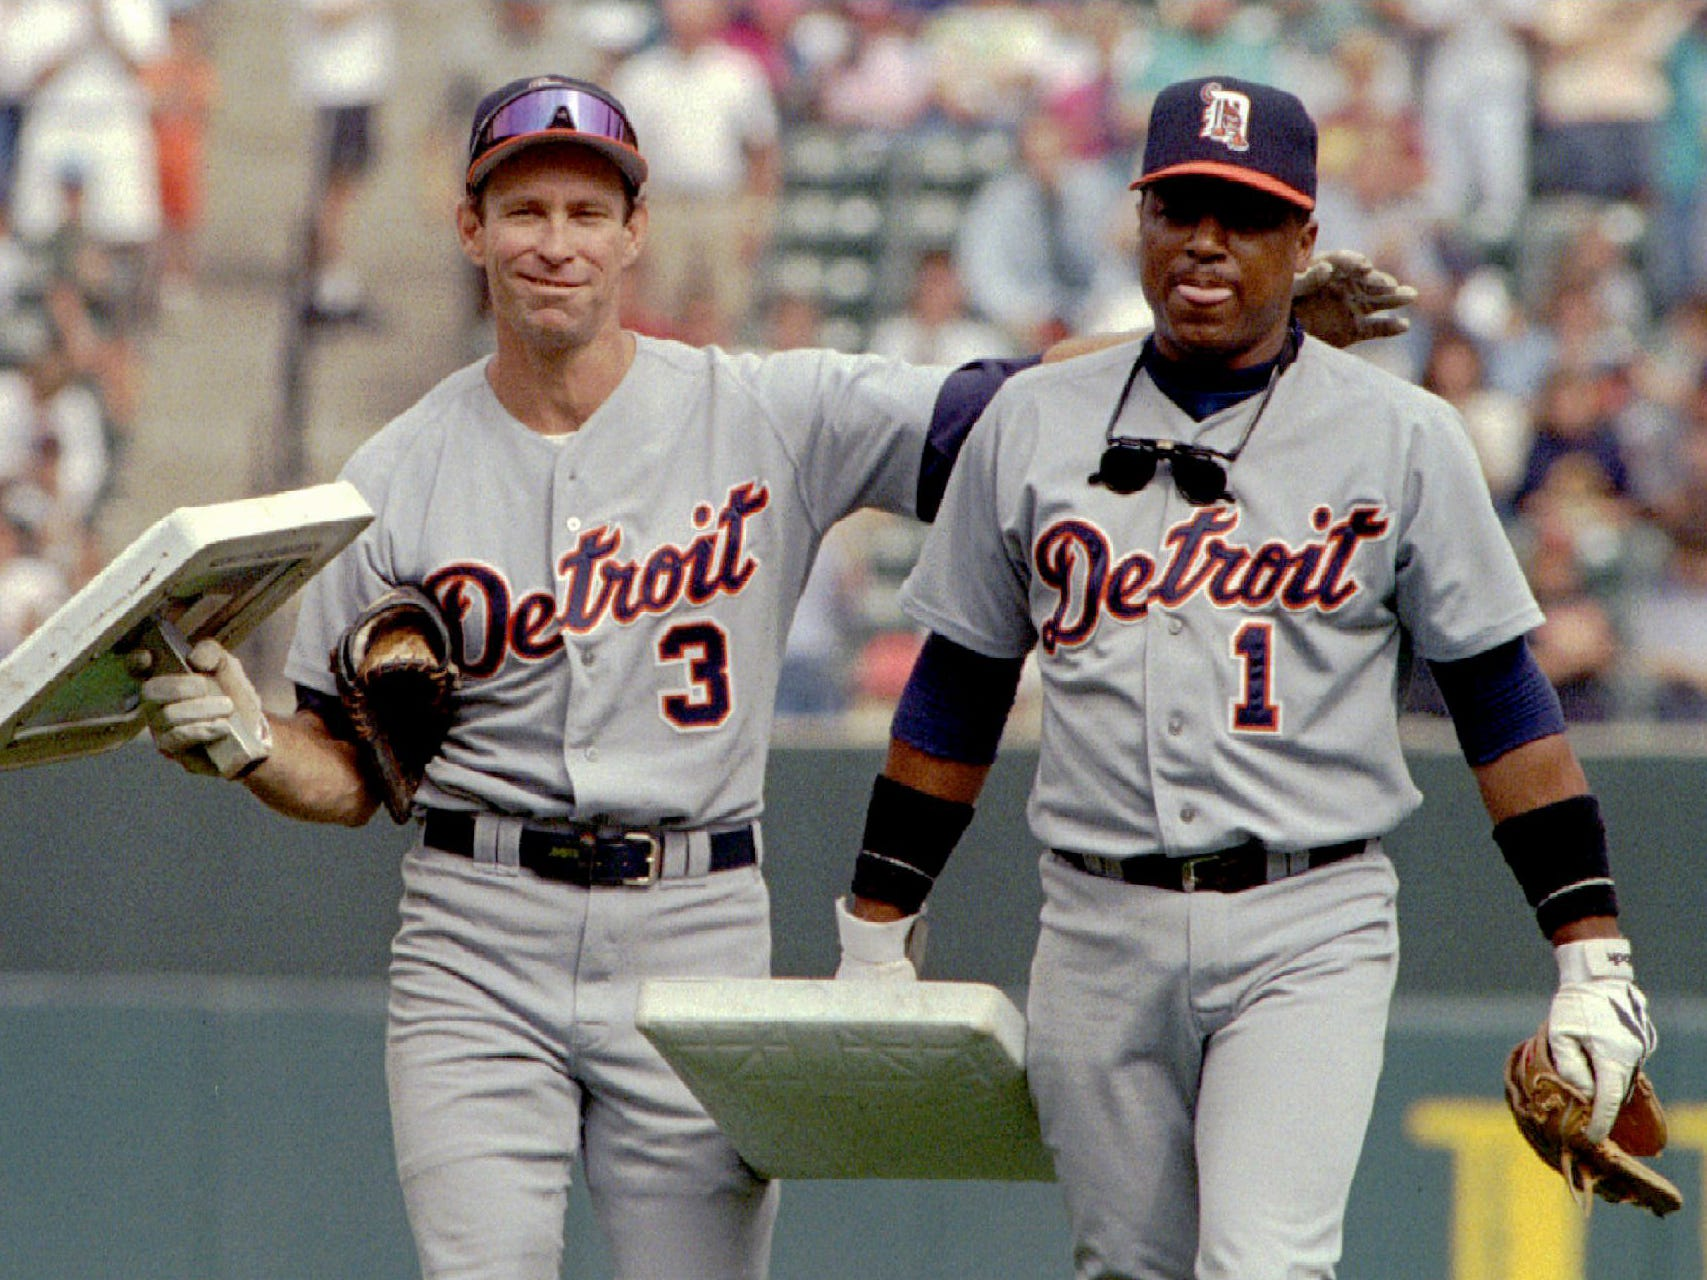 Detroit Tigers' Alan Trammell and a teammate Lou Whitaker walk off the field at Camden Yards with bases that were presented to them by Baltimore Orioles' Cal Ripken and Jeff Huson, October 1, 1995.